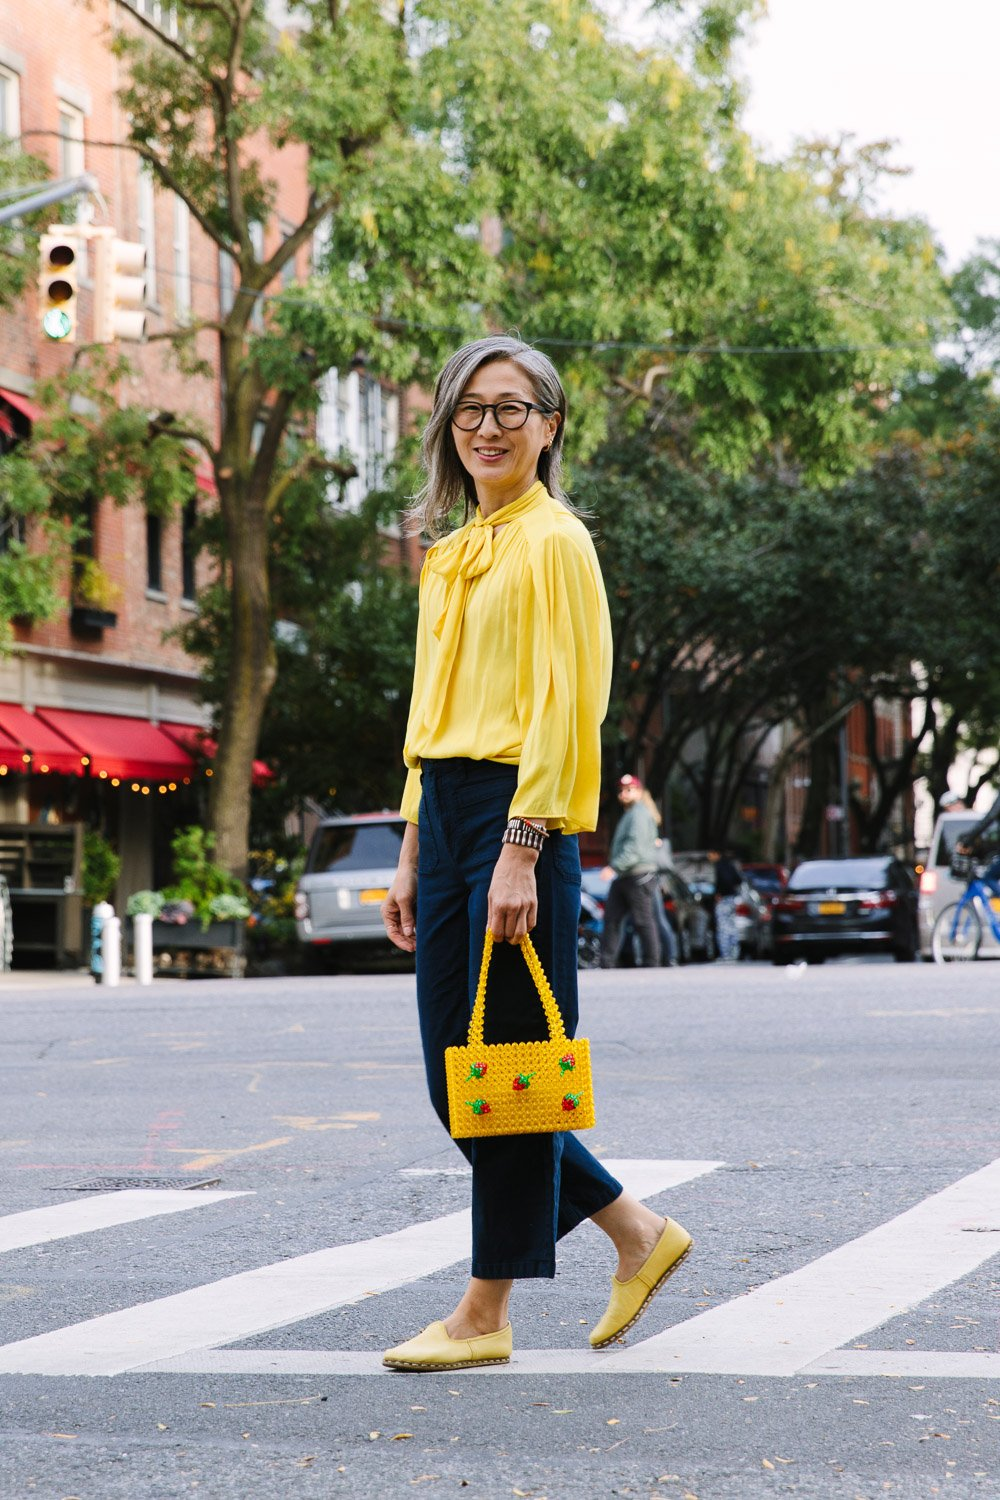 A Week of Outfits: Juliana Sohn